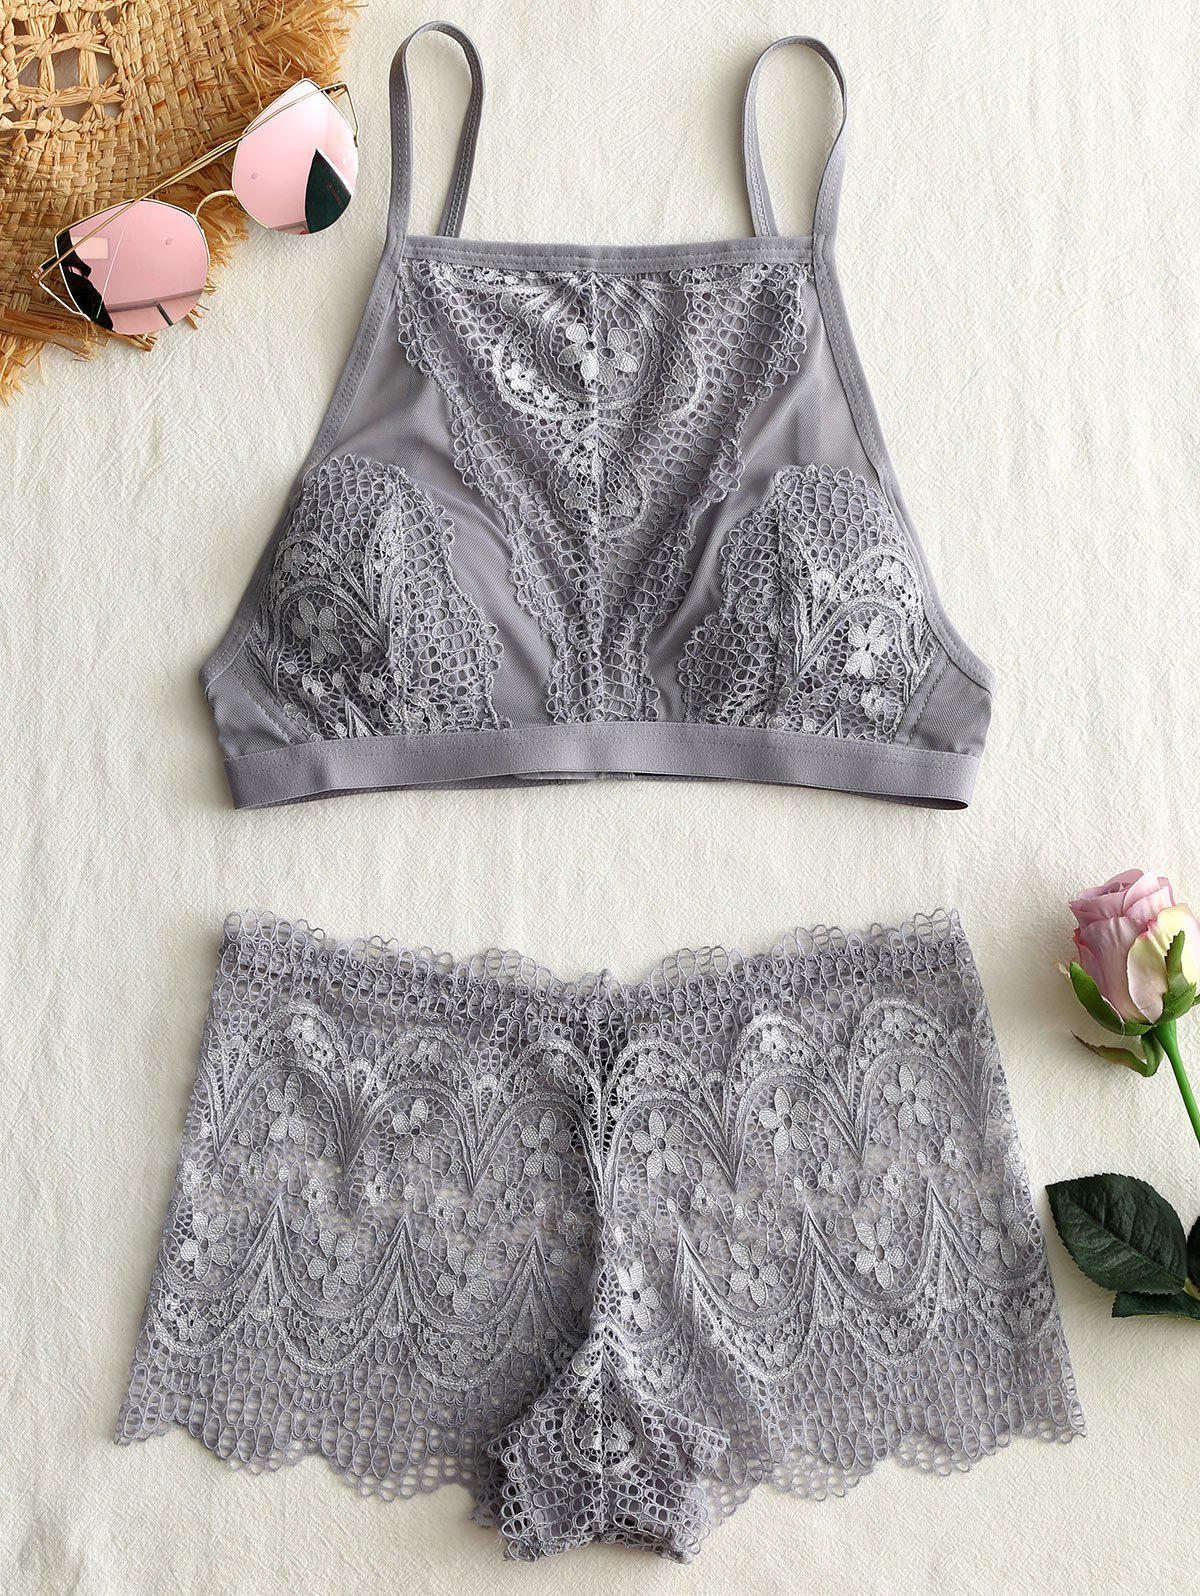 Hot Mesh Lace Sheer Bra Set